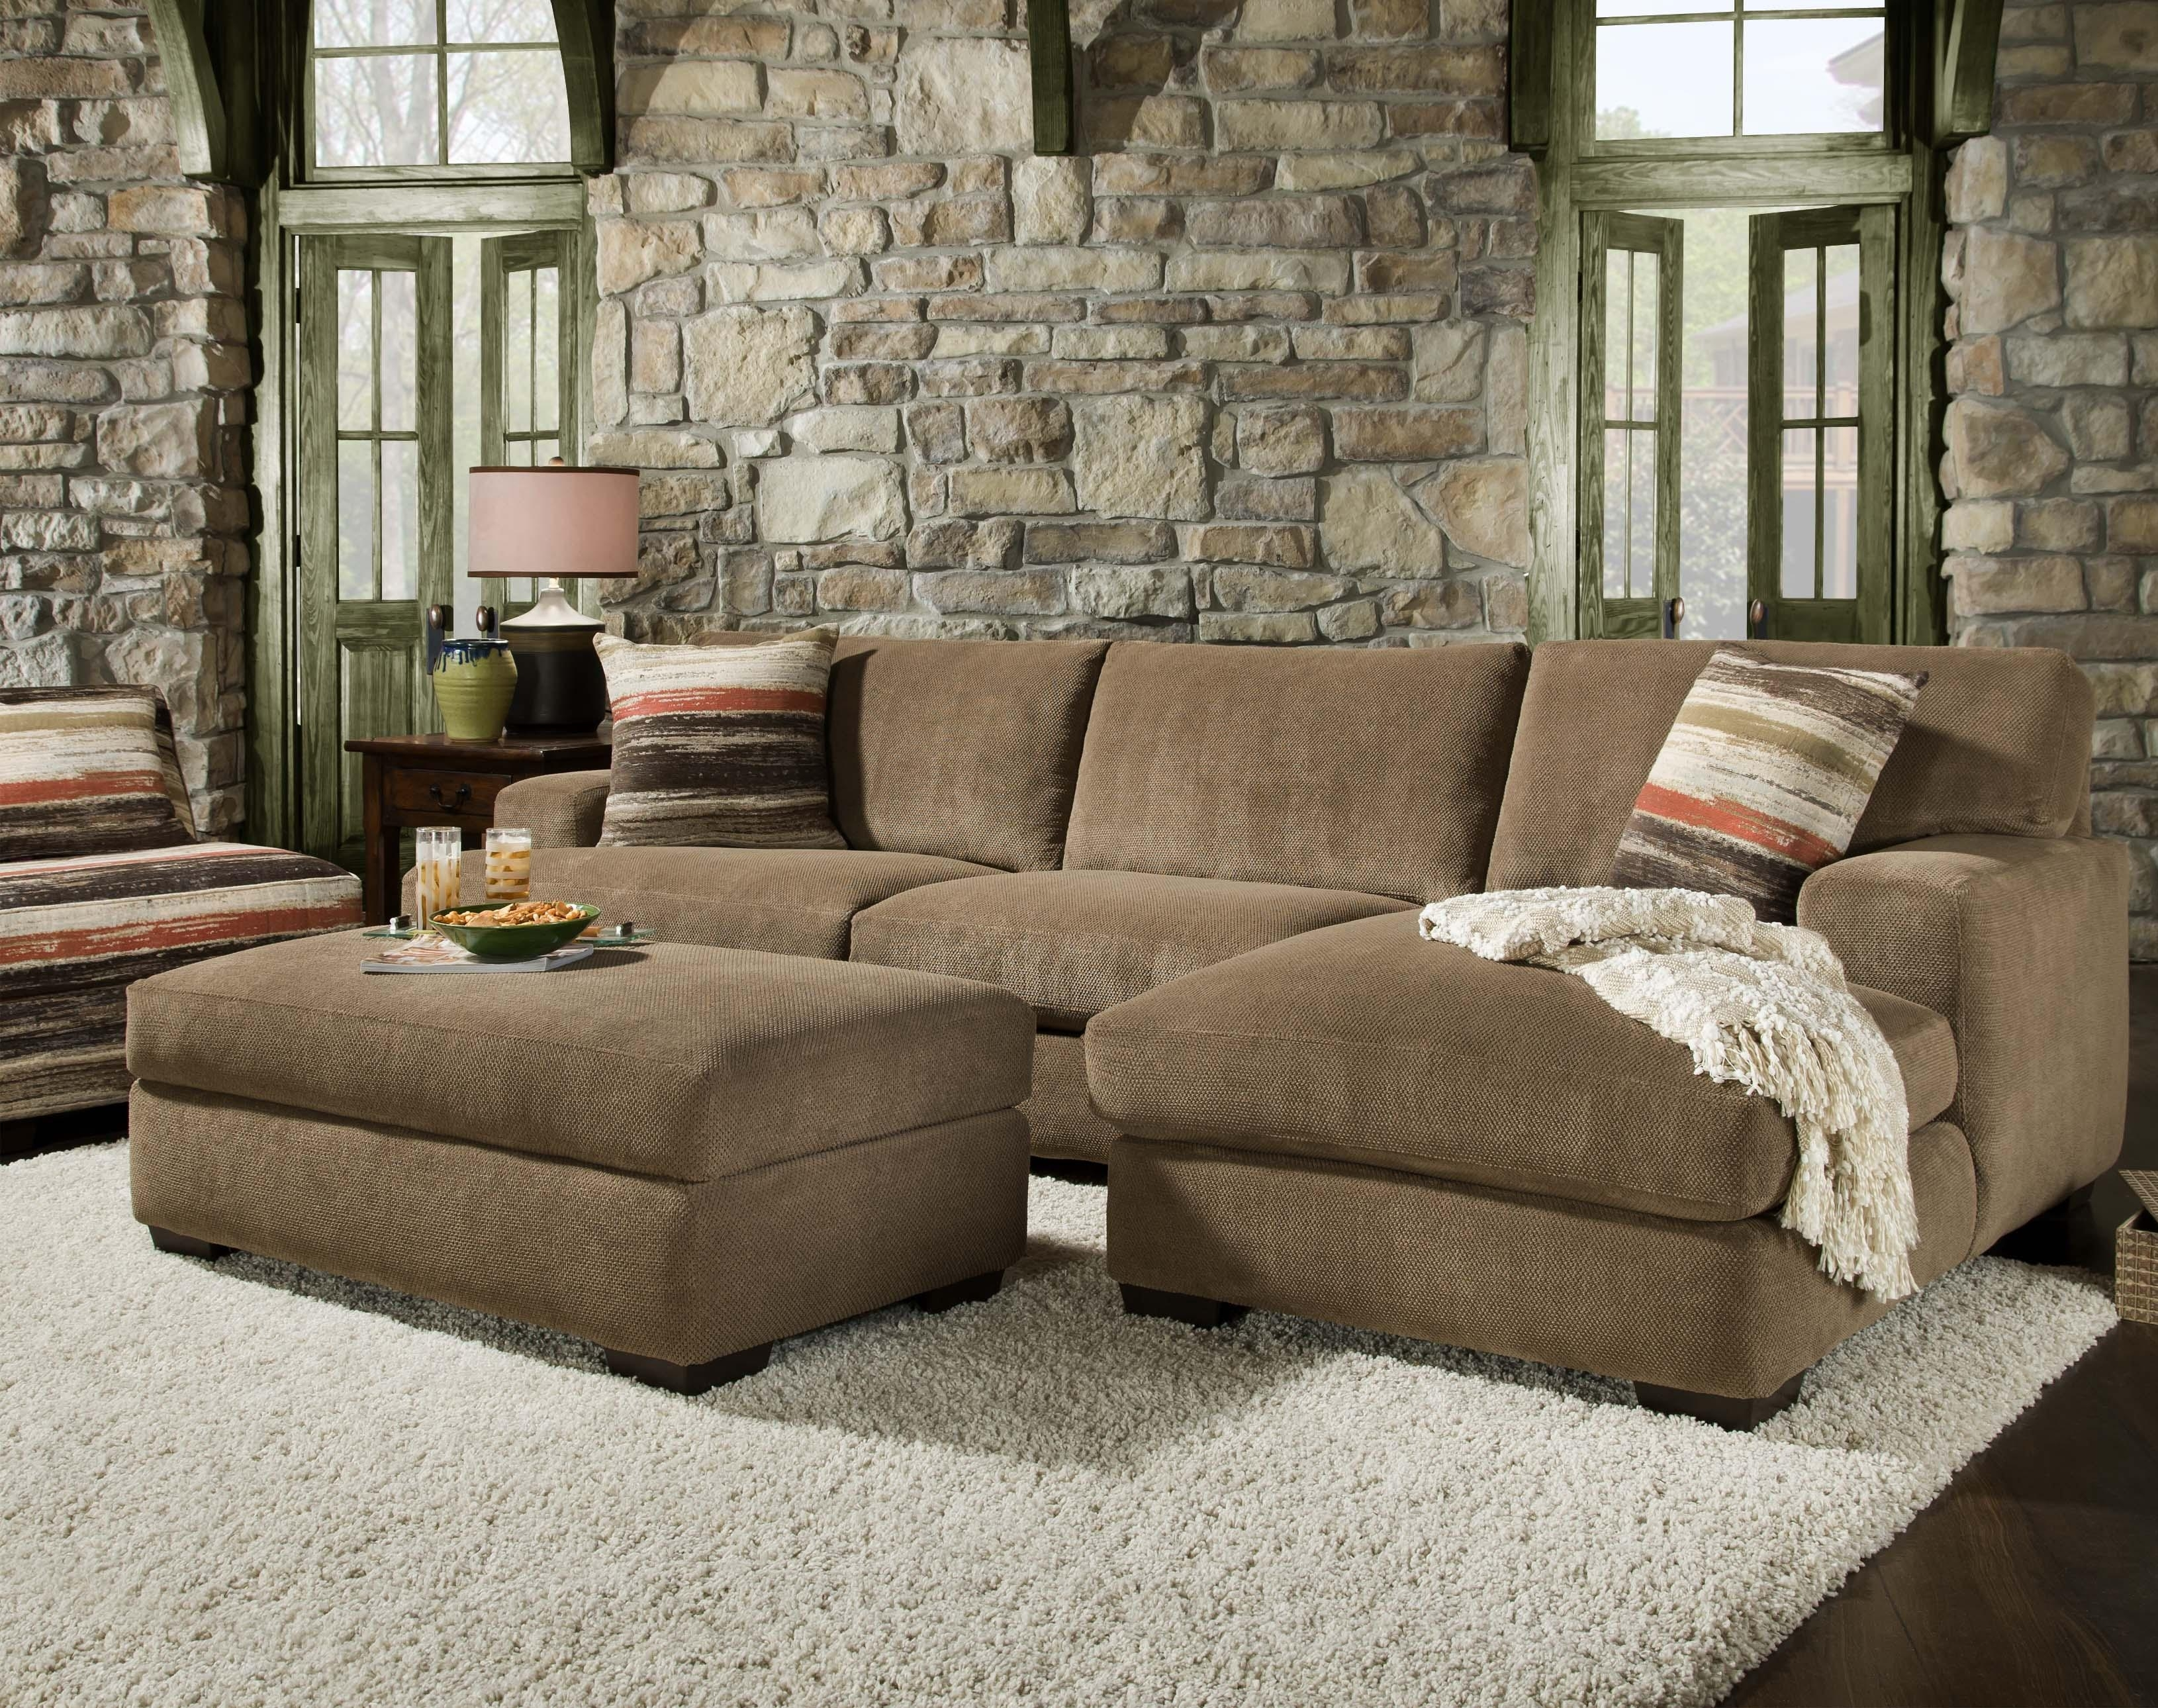 48B0 Small Sectional With Chaisecorinthian | Wolf Furniture Inside Small Sectional Sofas With Chaise And Ottoman (Image 1 of 10)